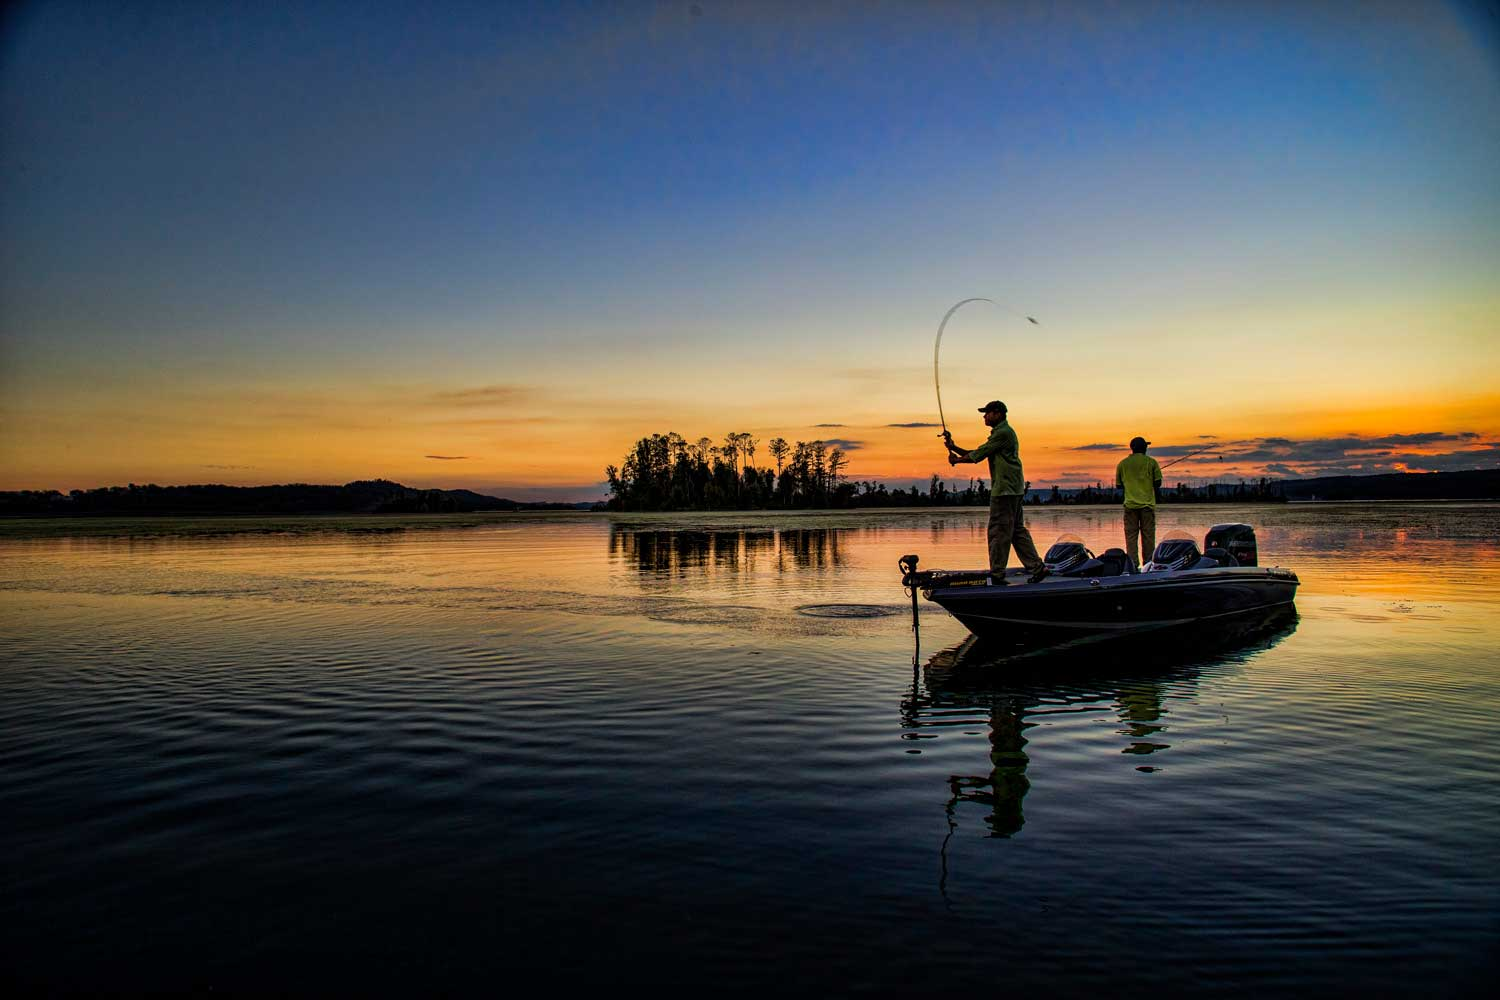 casting-fisherman-on-lake-at-sunrise